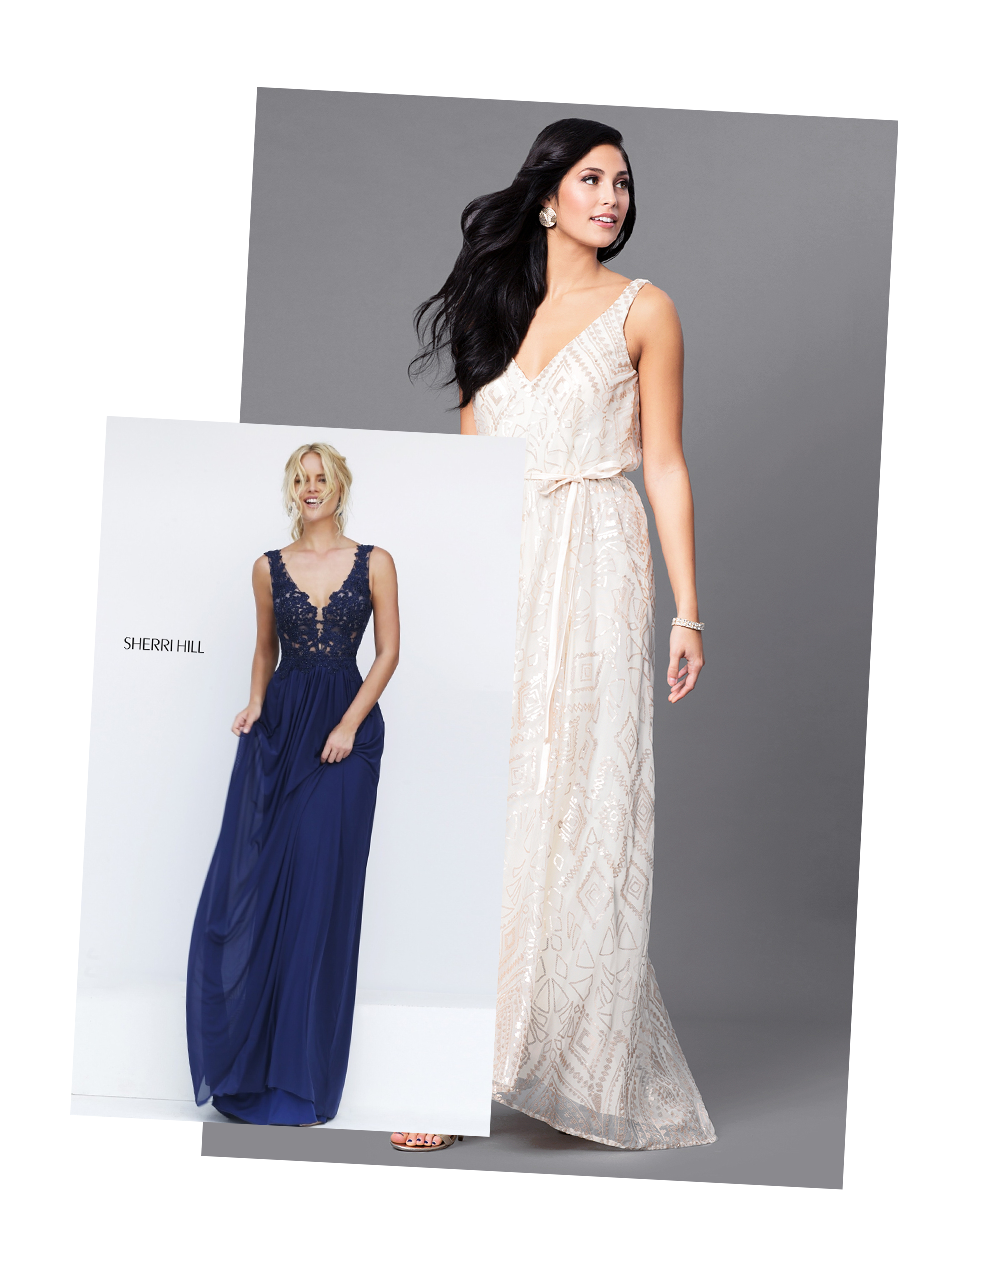 2018 Prom Dress Styles and Trends - PromGirl